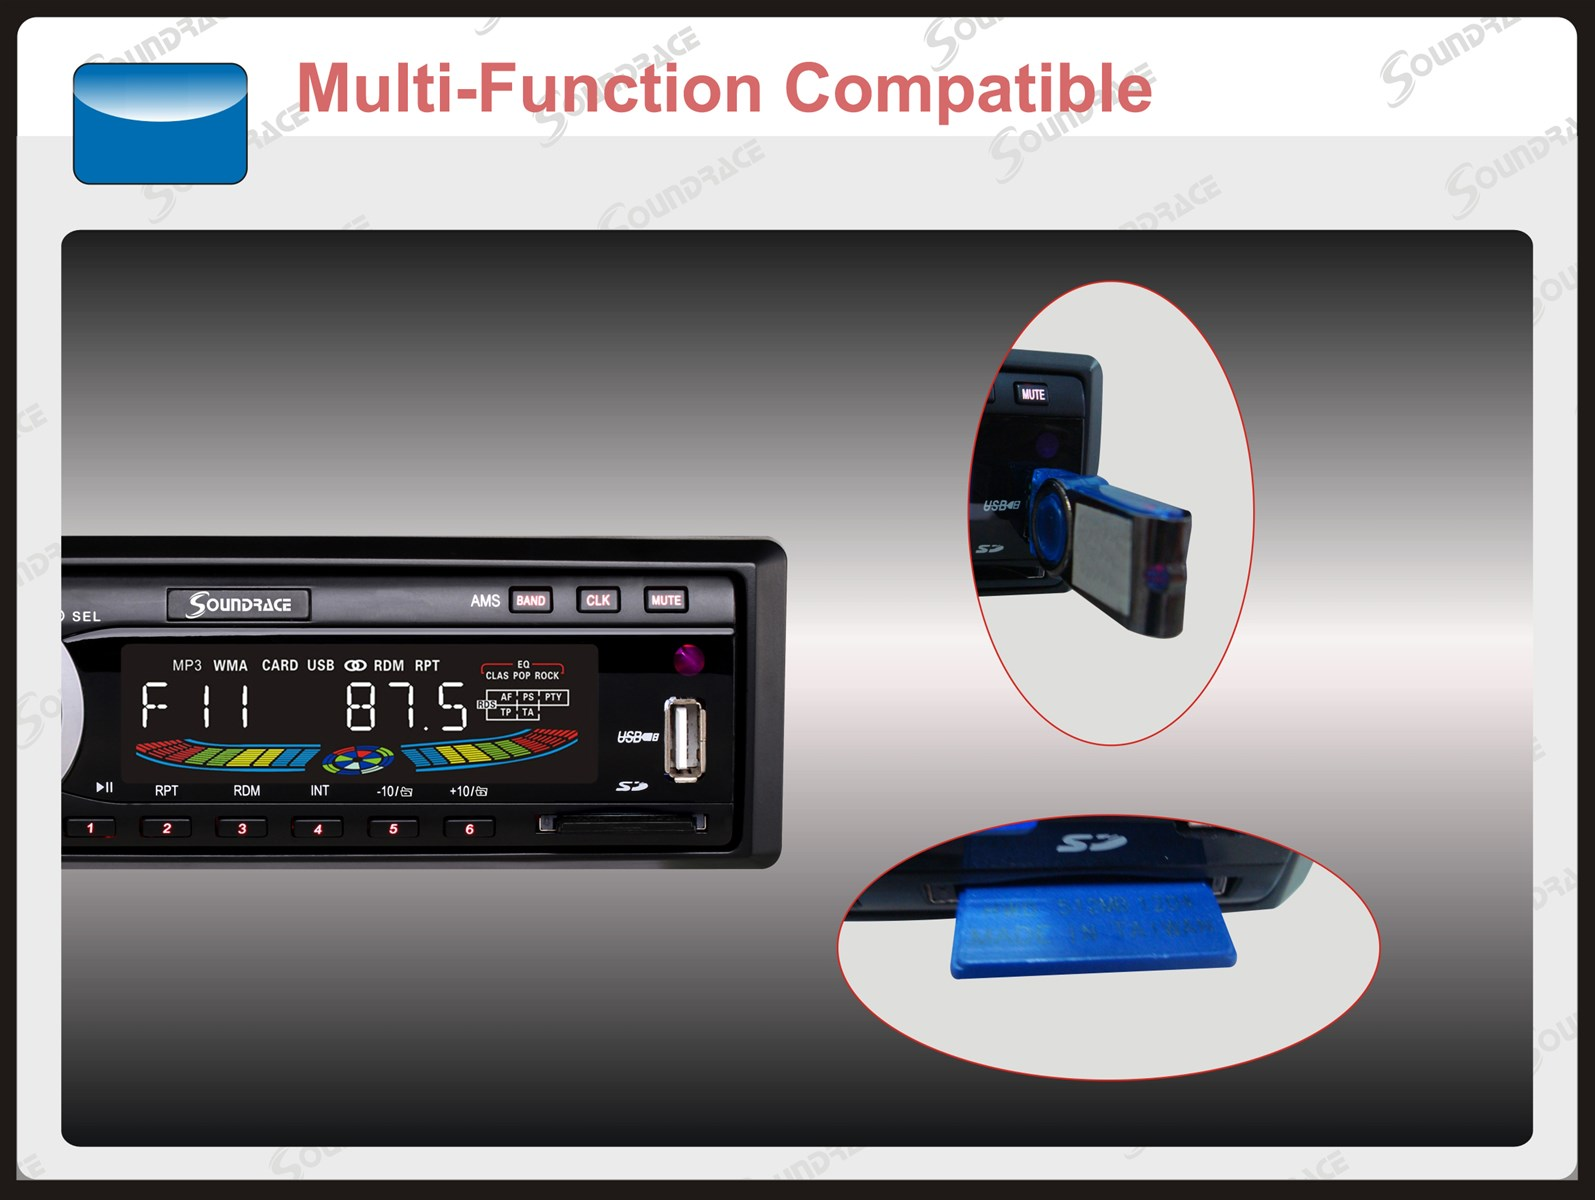 New Dual USB Car MP3 Player Model SR2218 from Soundrace